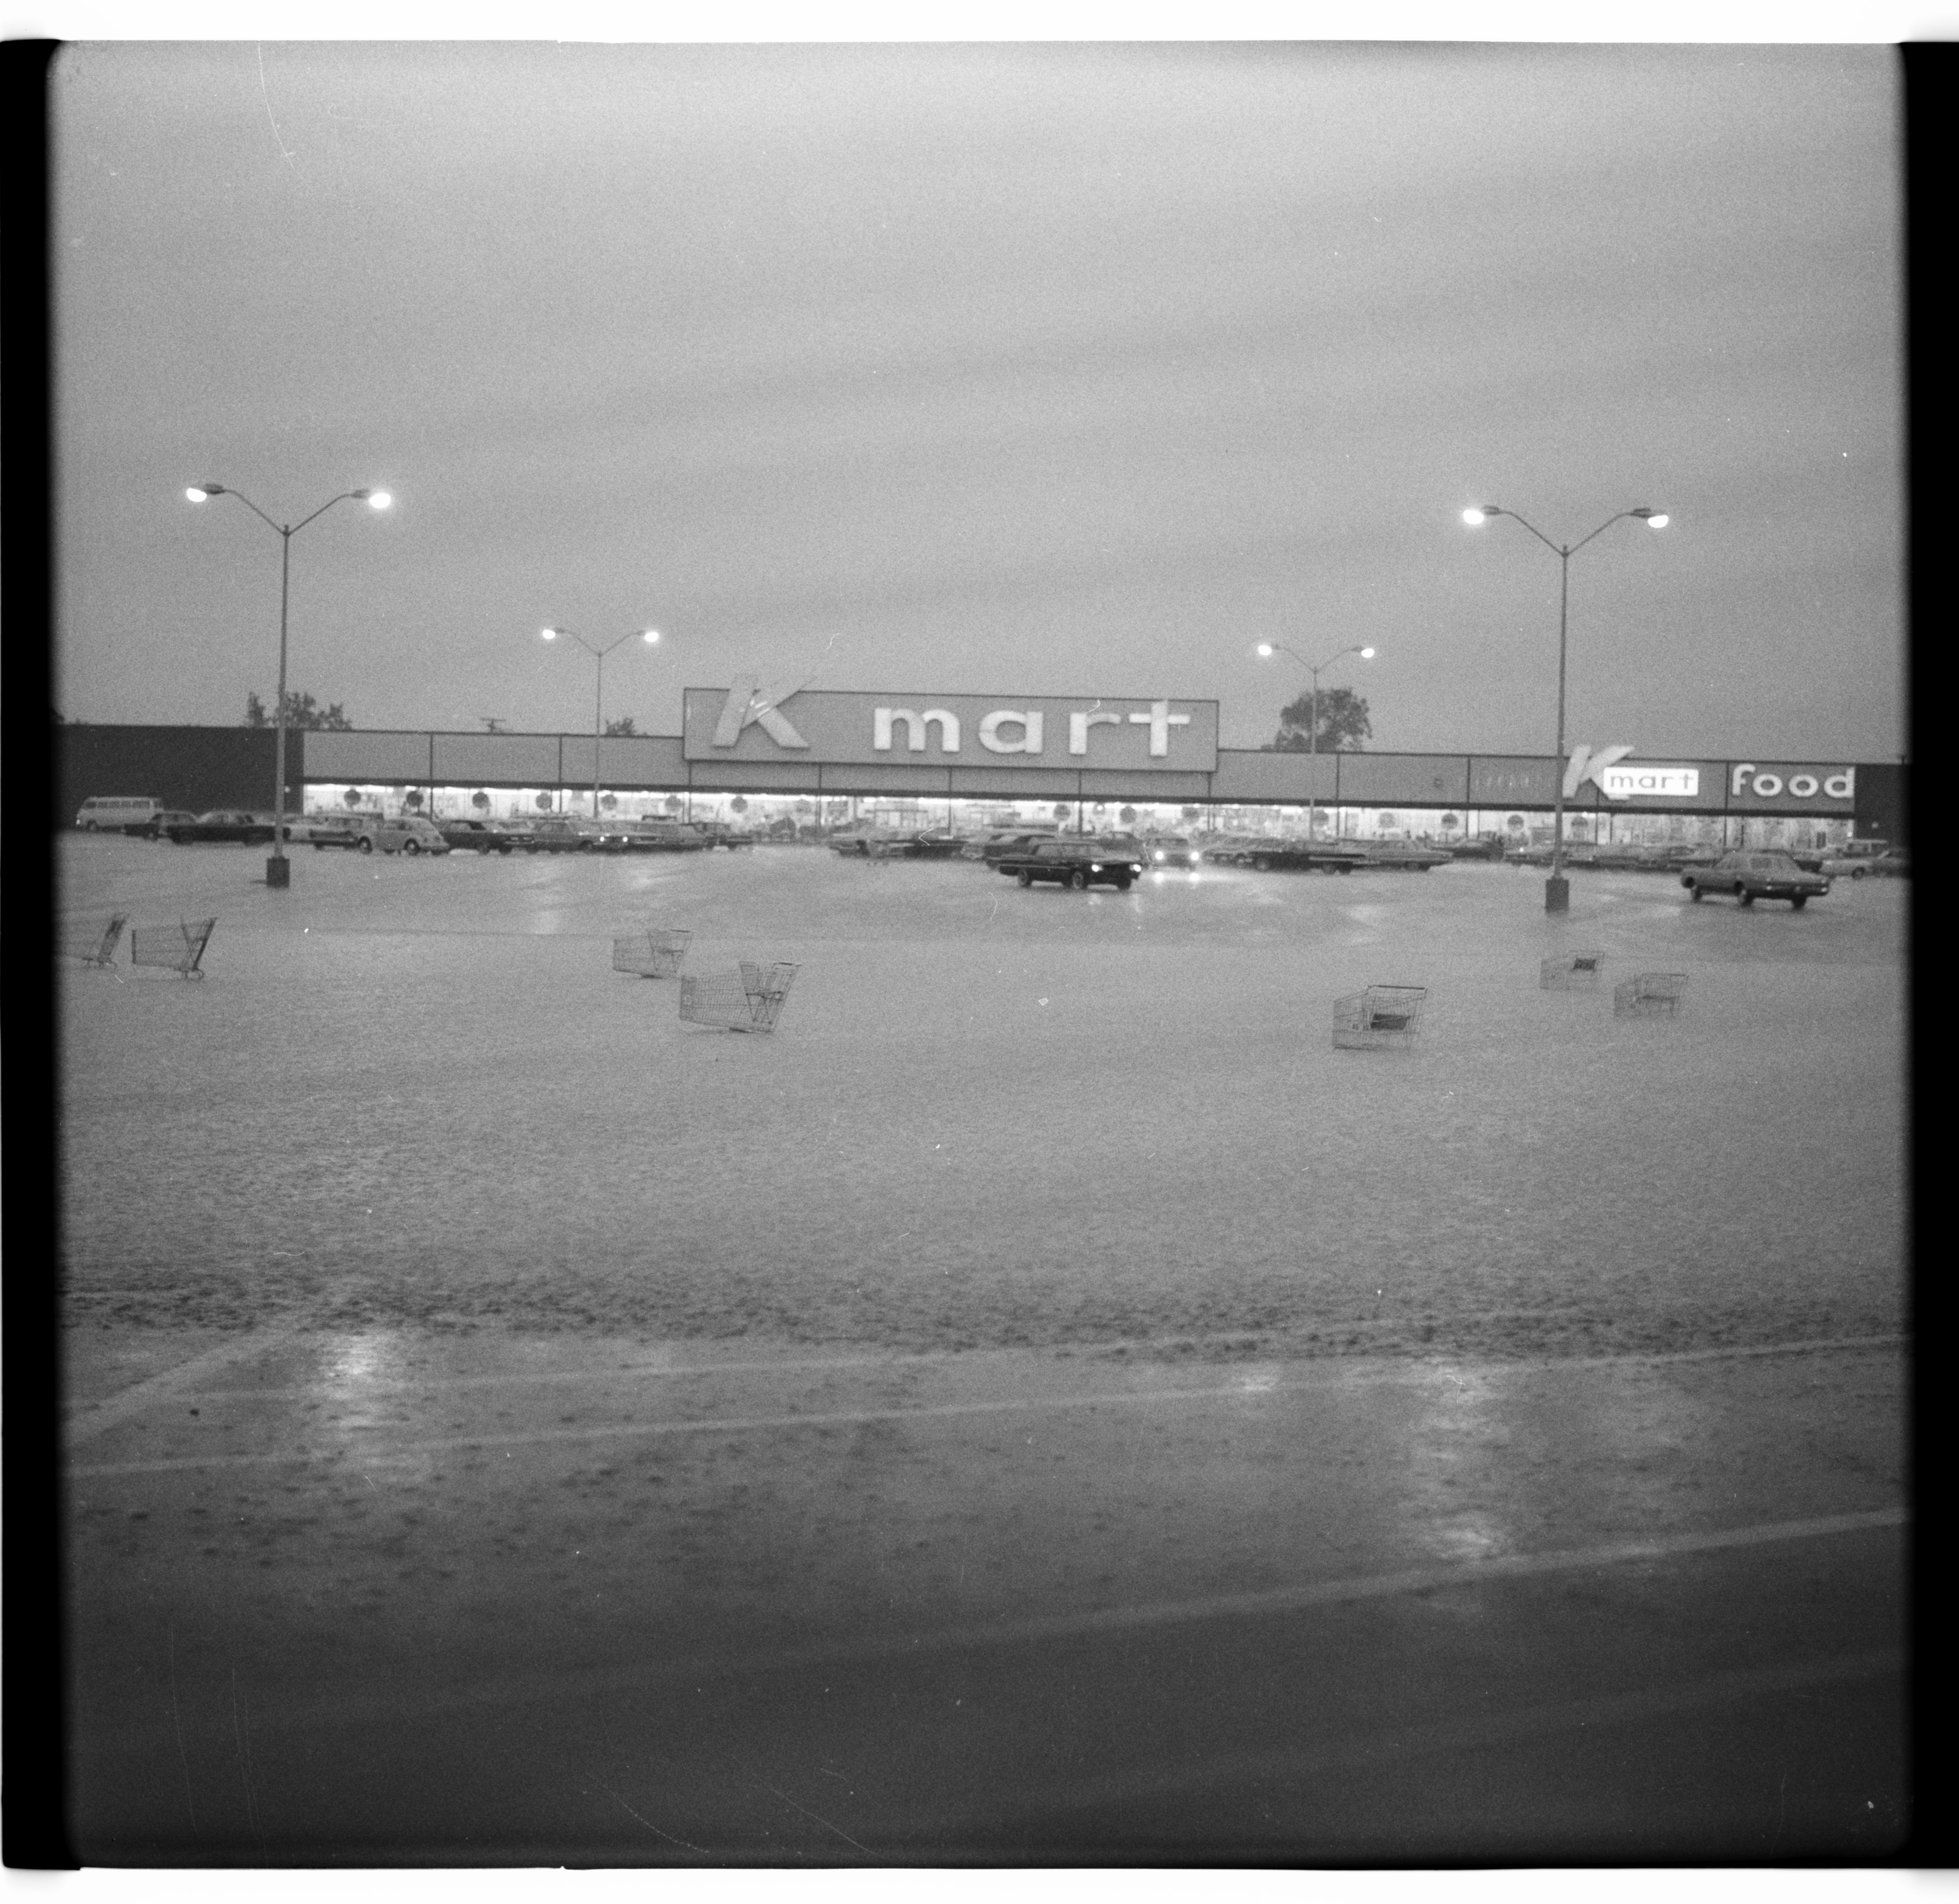 Flooded Kmart Parking Lot, June 1968 Floods image